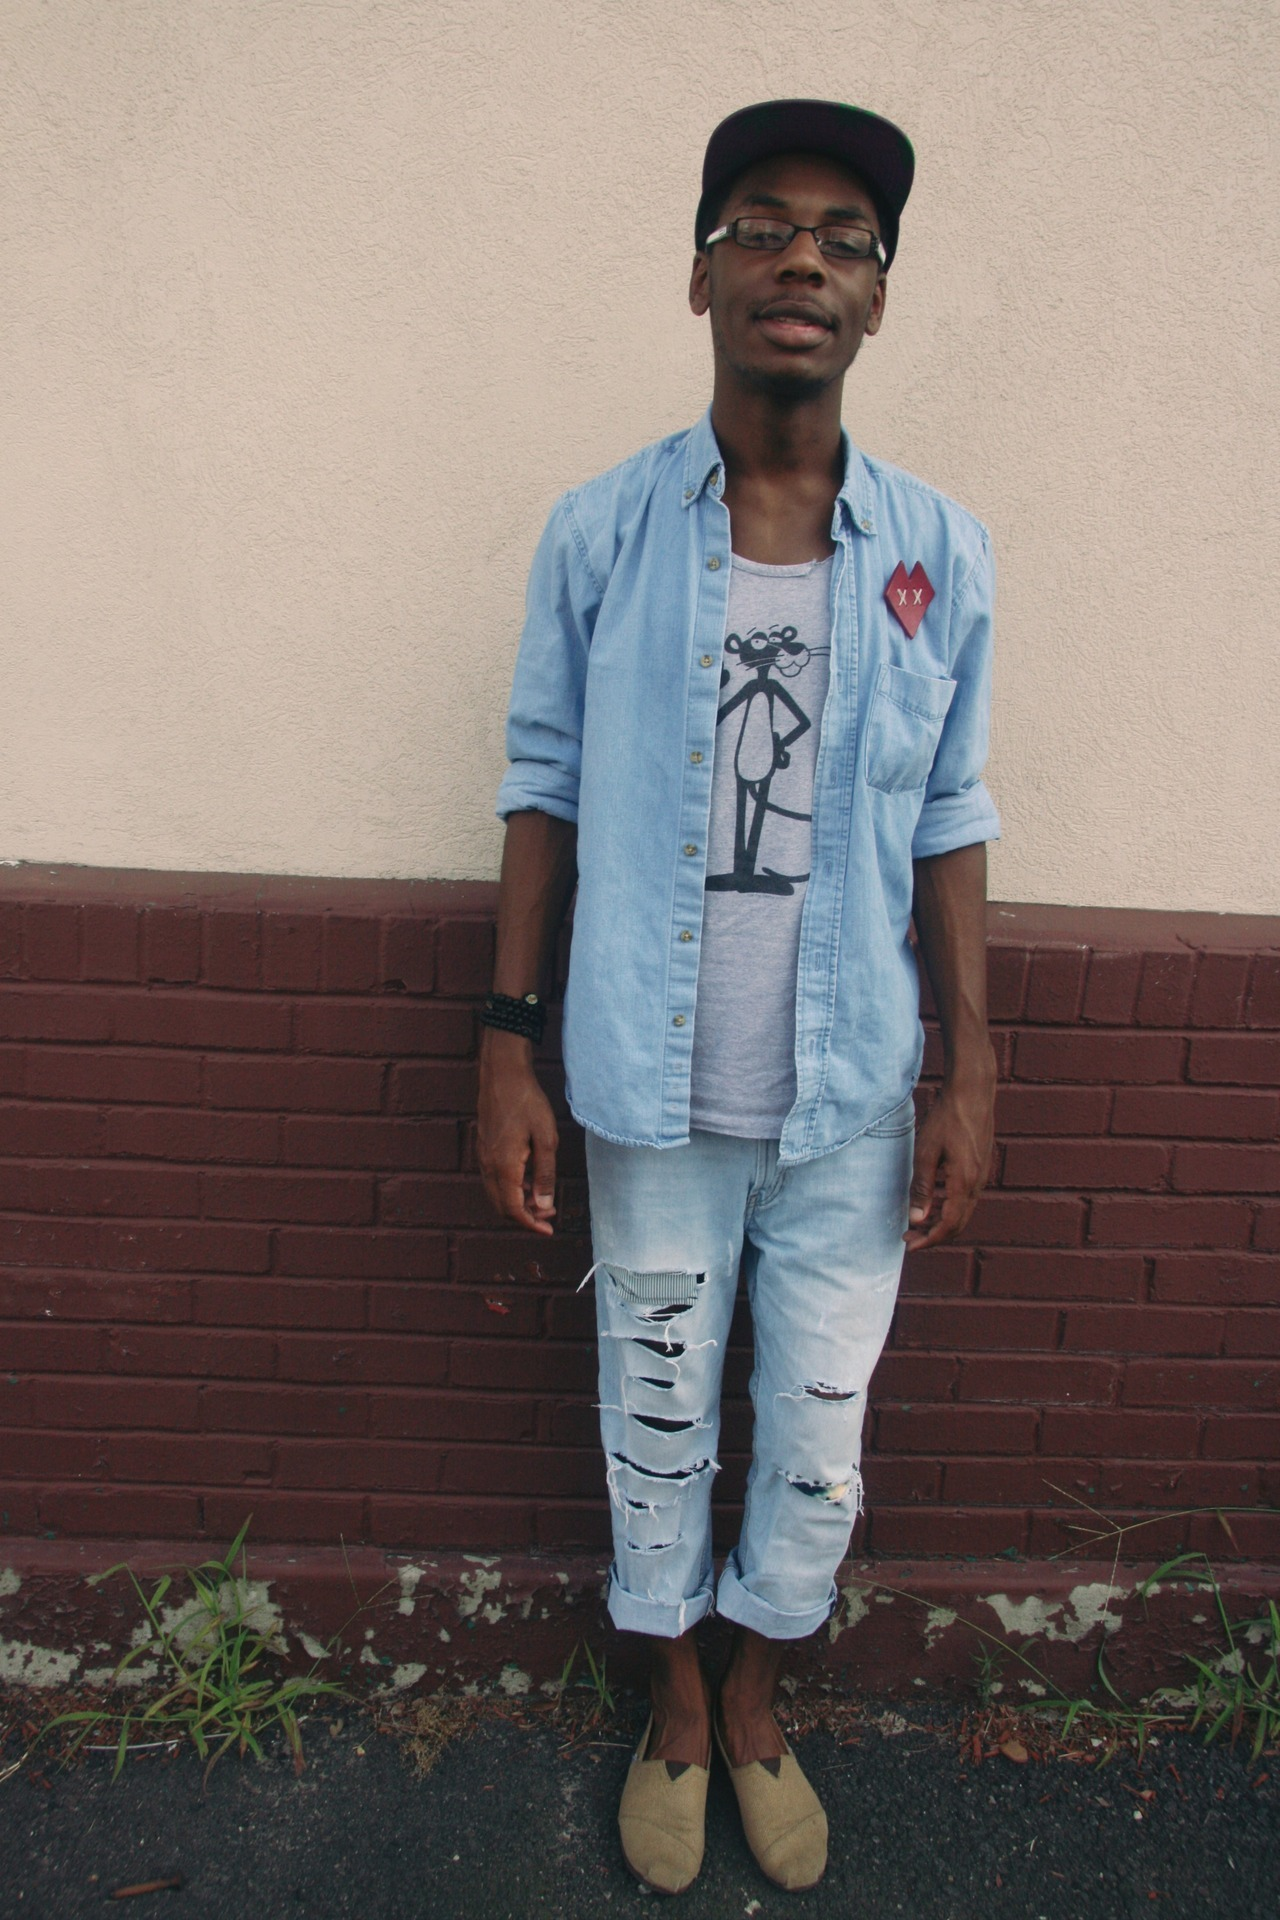 Kalin Wiggins18Norfolk, VAhttp://fuh-s0dliving.tumblr.com/ Blackfashion On FacebookTwitter @BlackFashionbyj